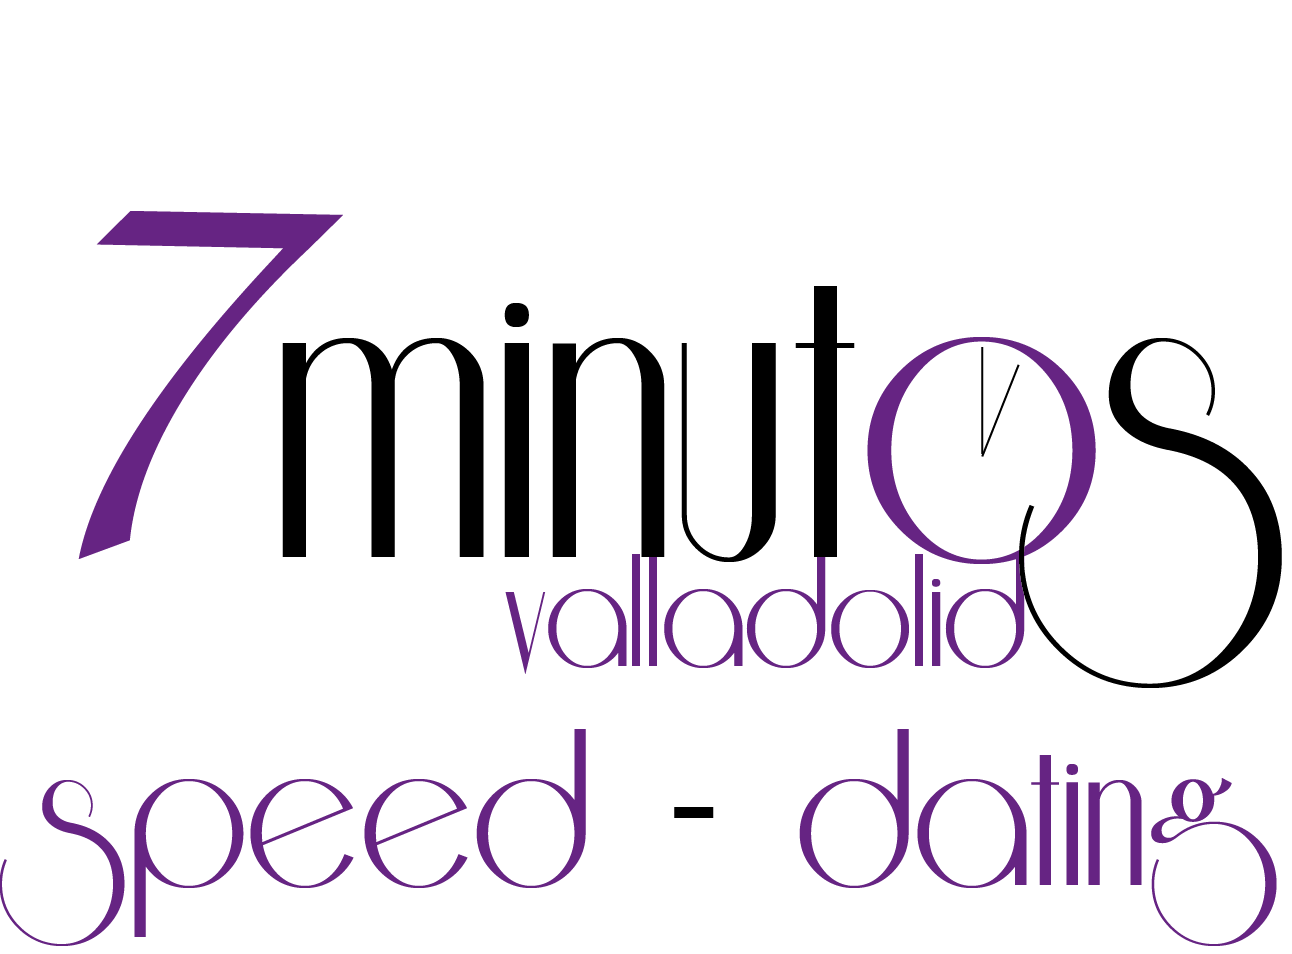 Speed dating 7 min